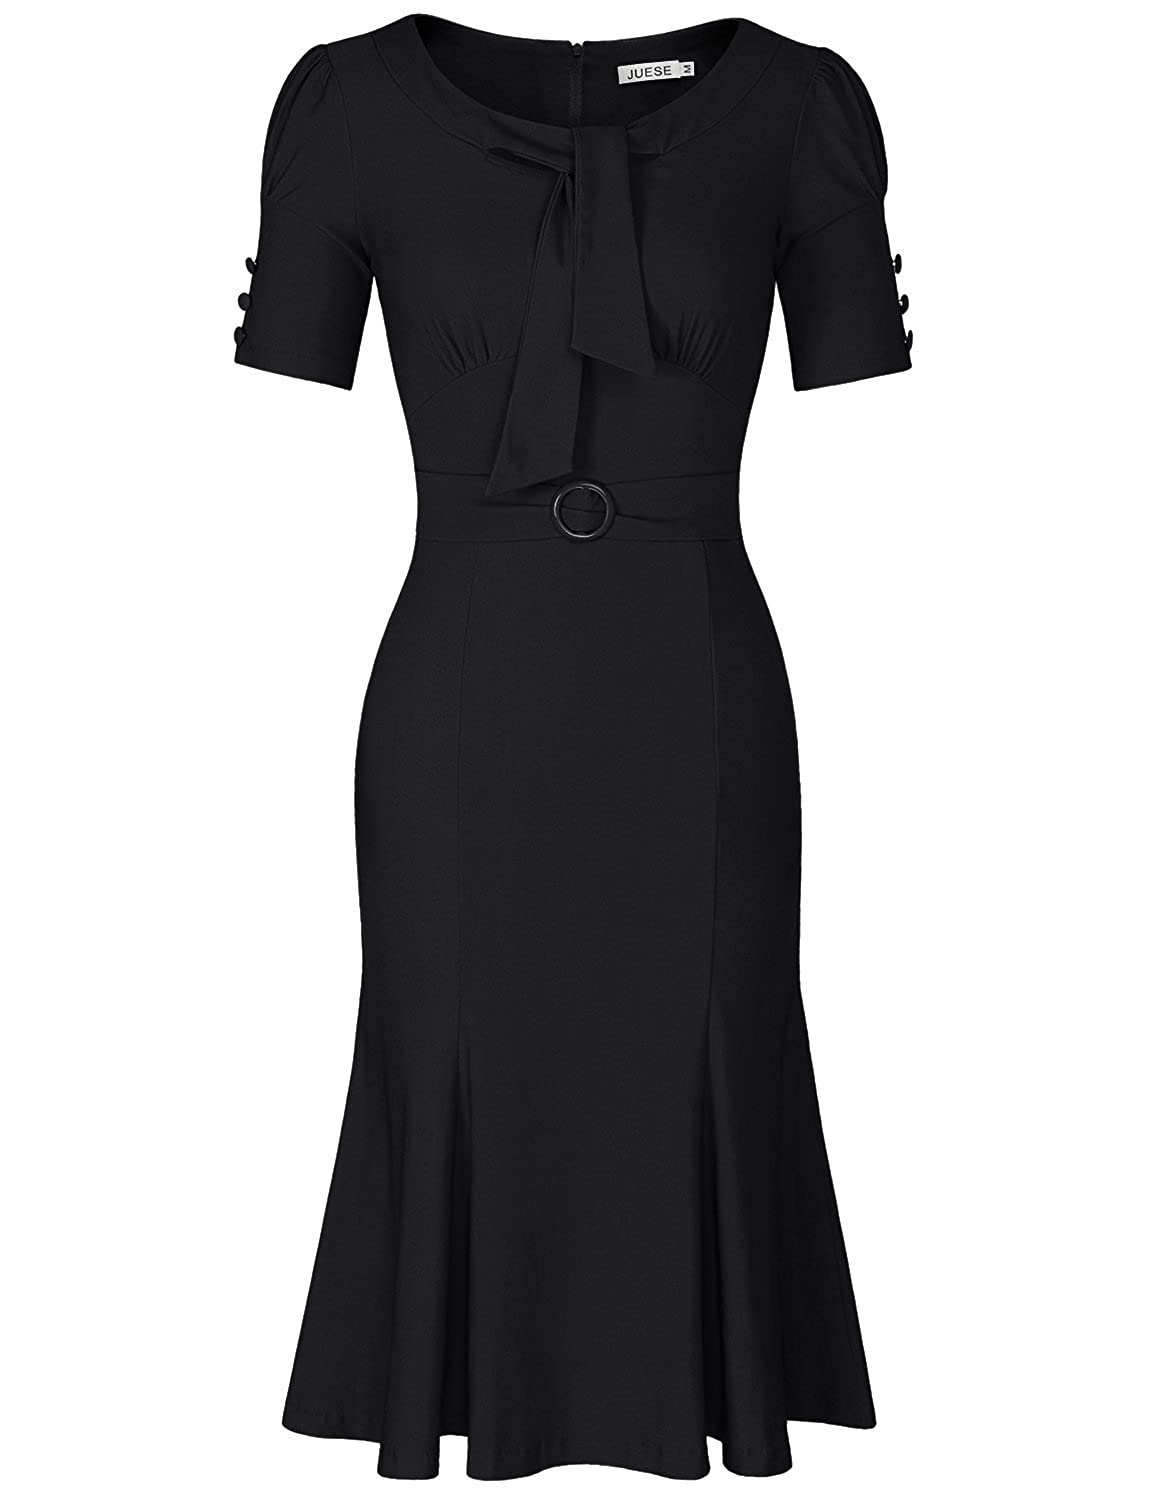 Vintage Inspired Cocktail Dresses, Party Dresses Formal or Casual Party Pencil Dress $32.99 AT vintagedancer.com